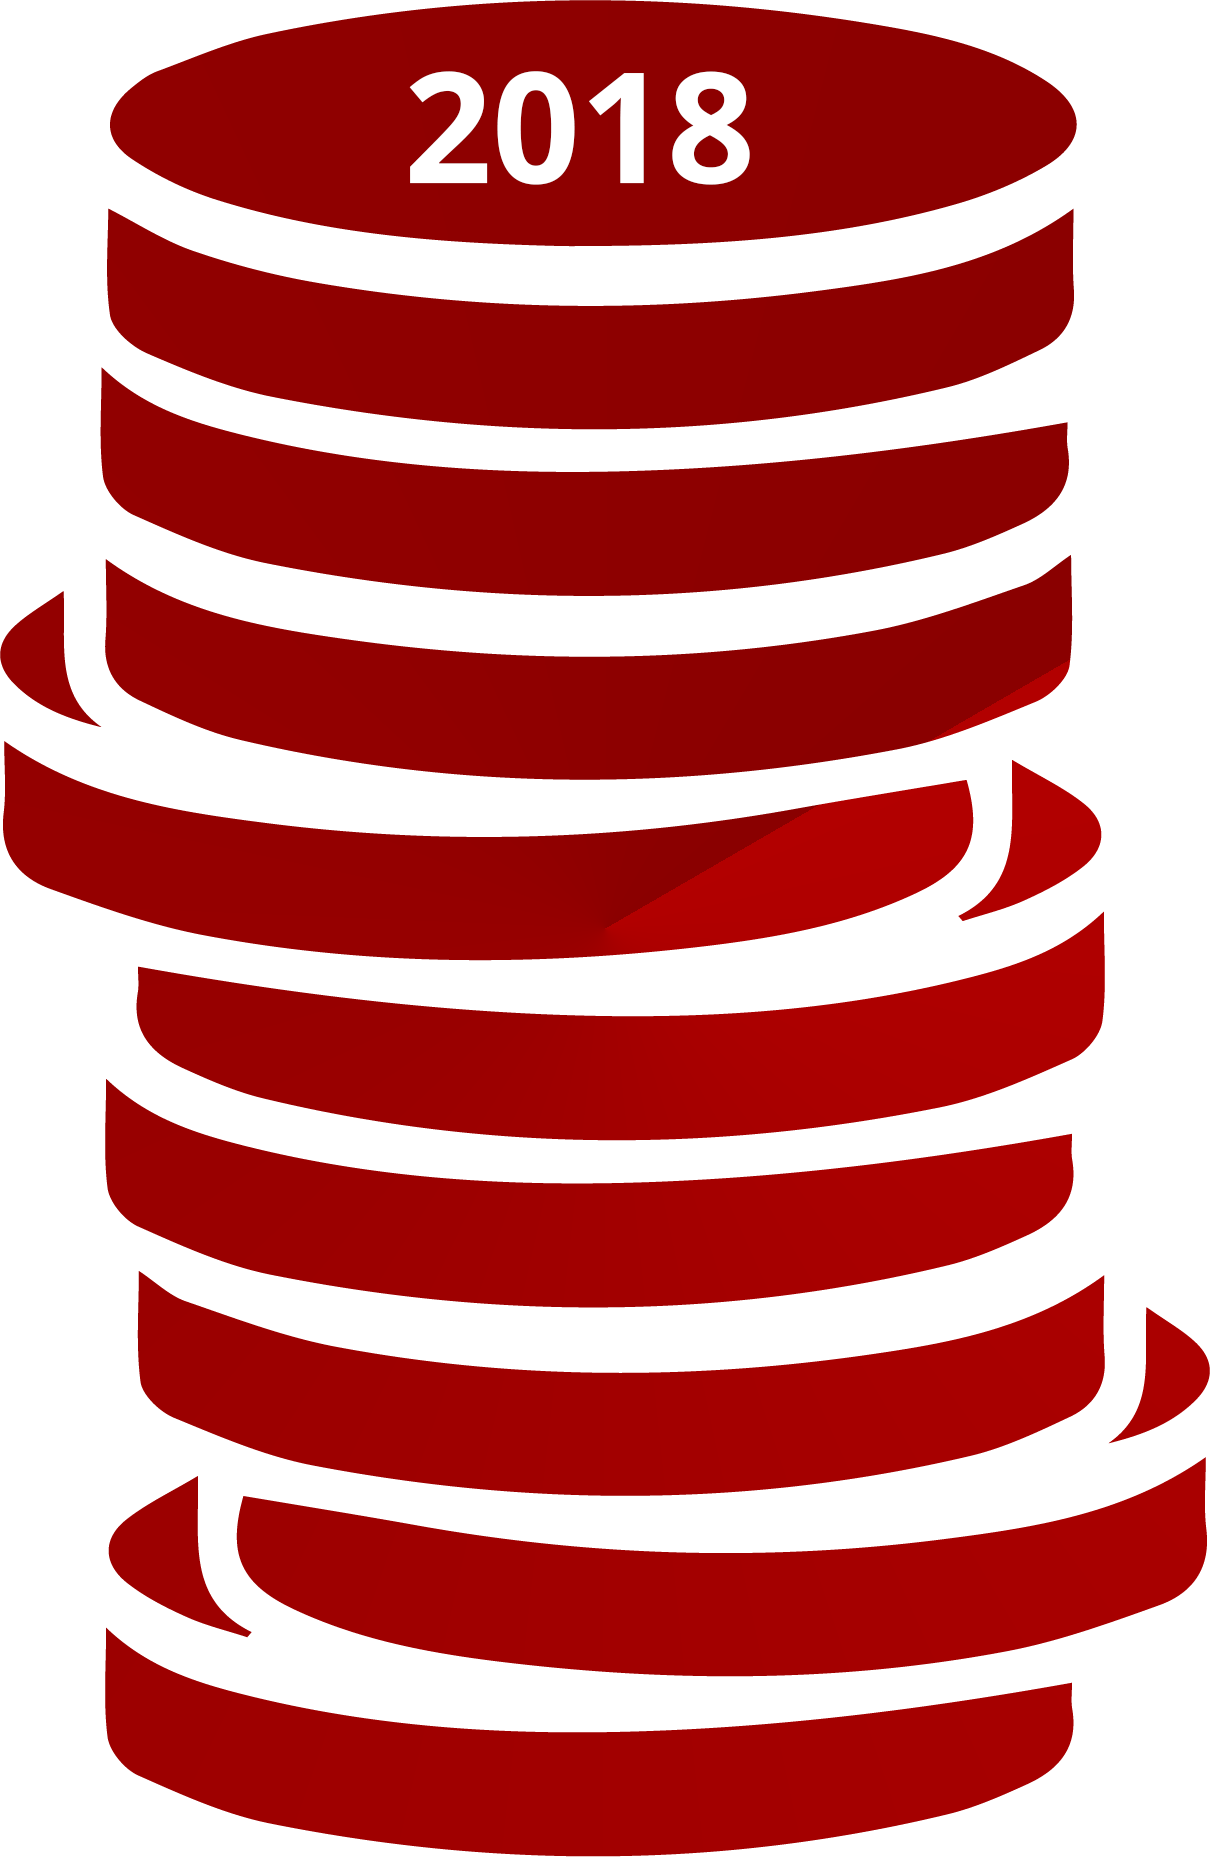 illustration of a stack of coins dated 2018